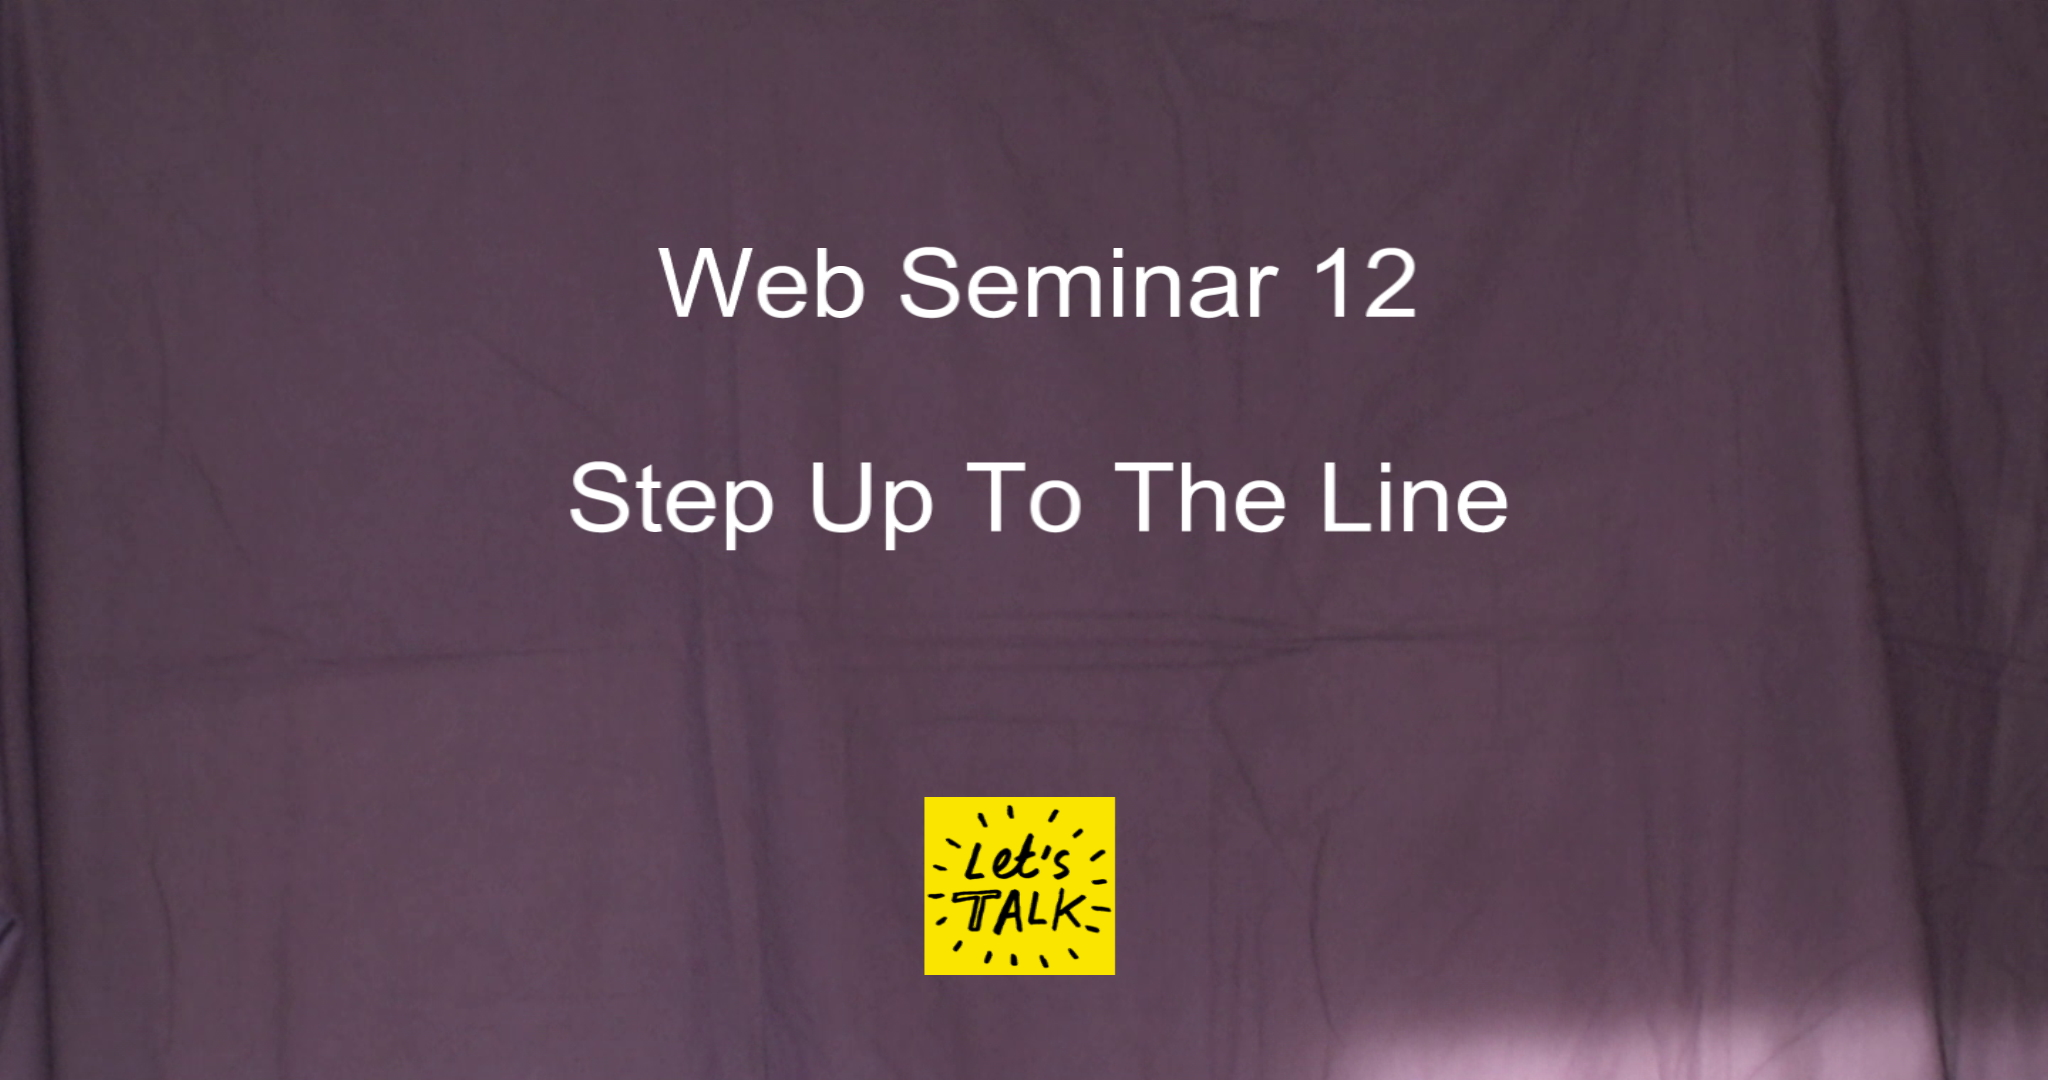 Web Seminar 12 - Step Up To The Line